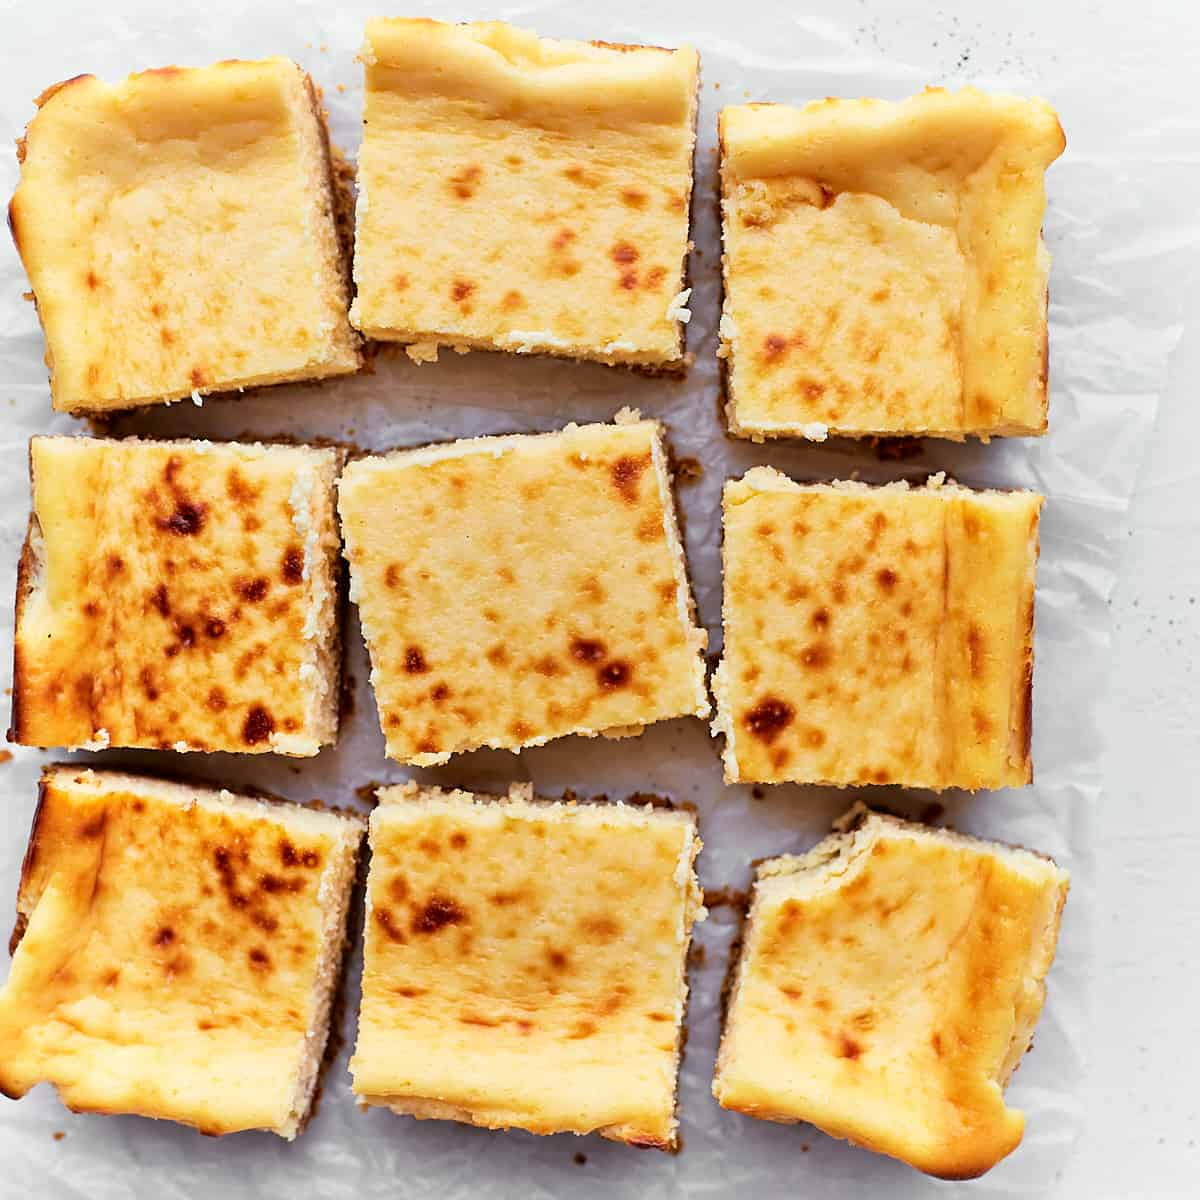 Decorative picture of cut cheesecake bars on white background